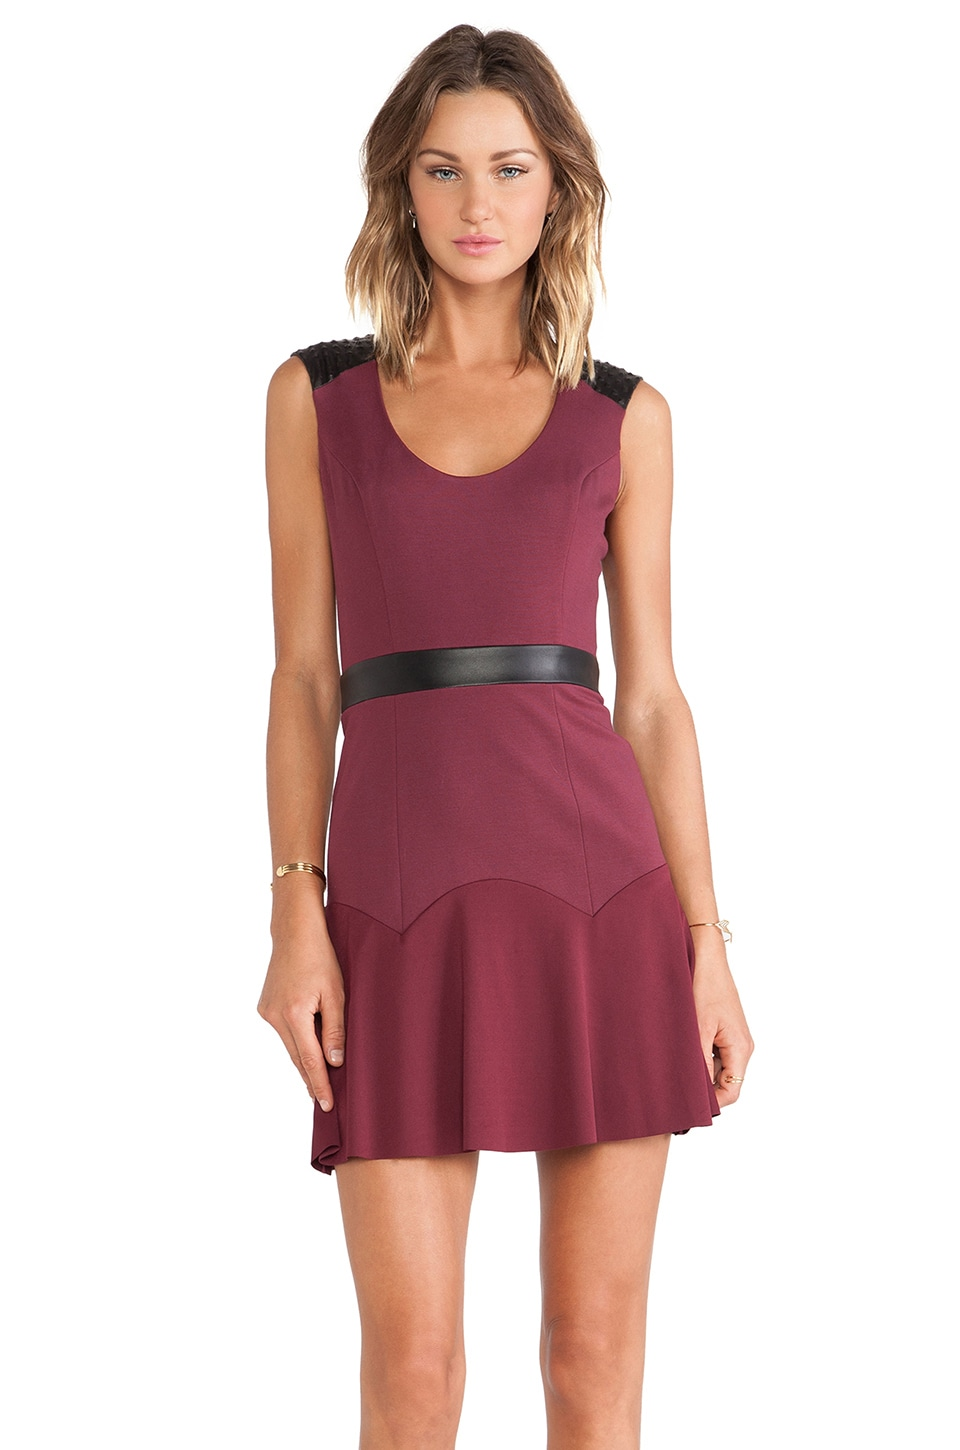 LaPina by David Helwani LaPina Lucy Mini Dress in Oxblood